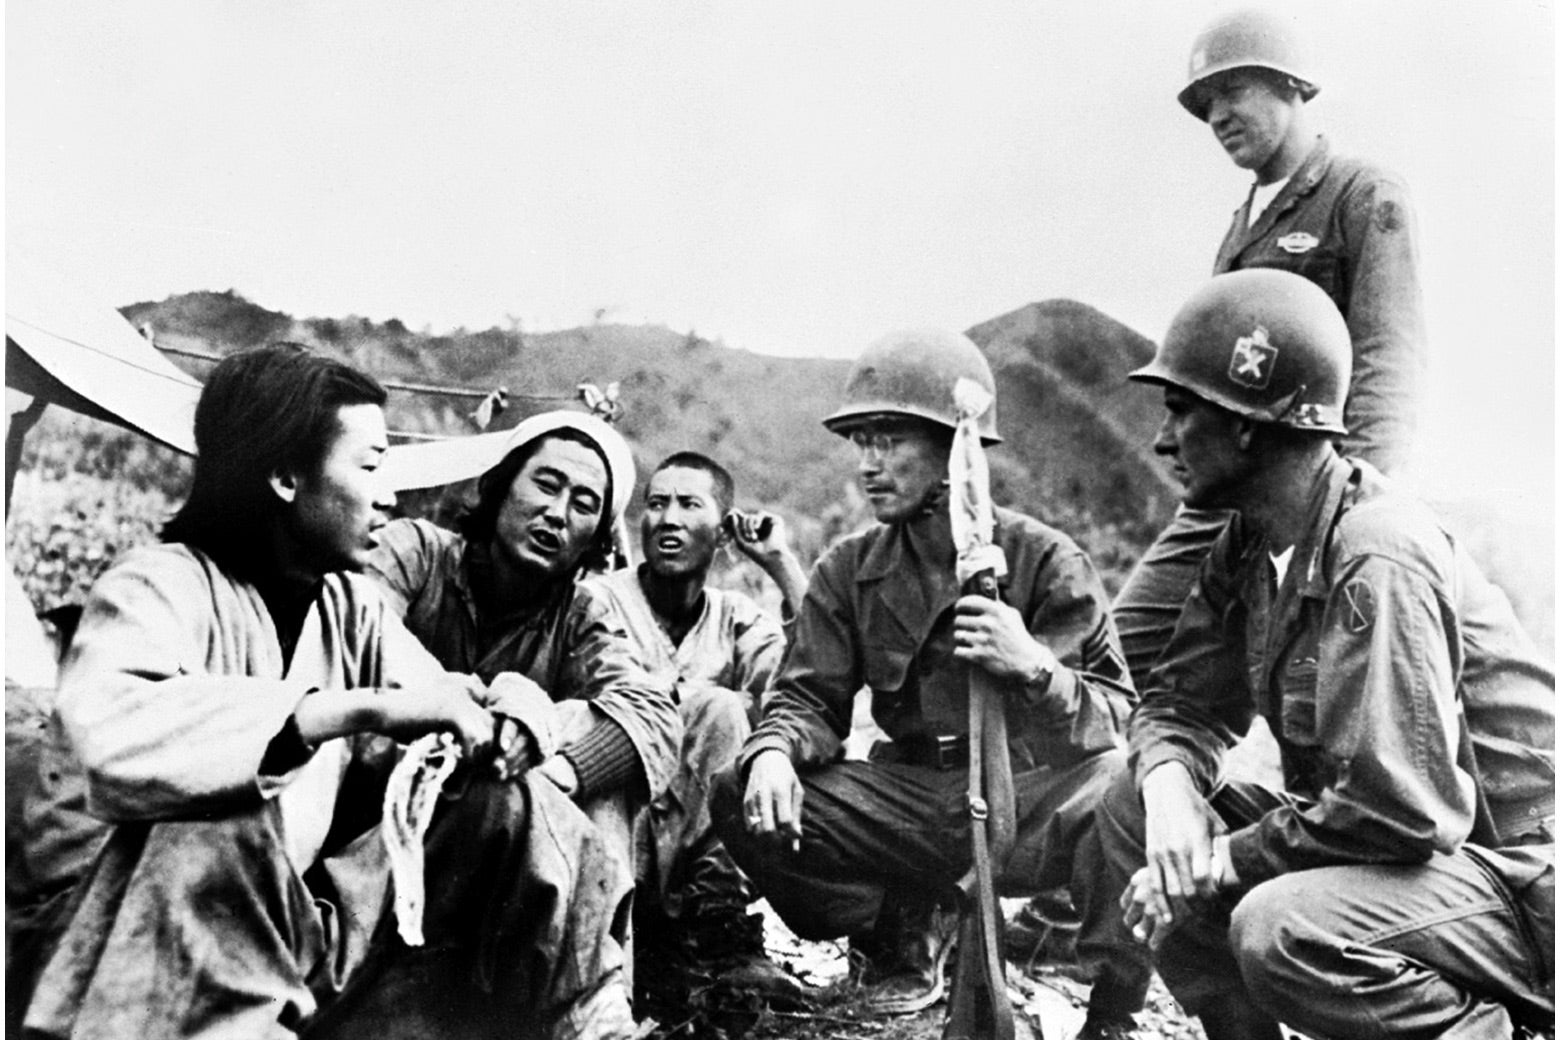 American soldiers crouch down to talk with North Koreans in a historical black-and-white photo.